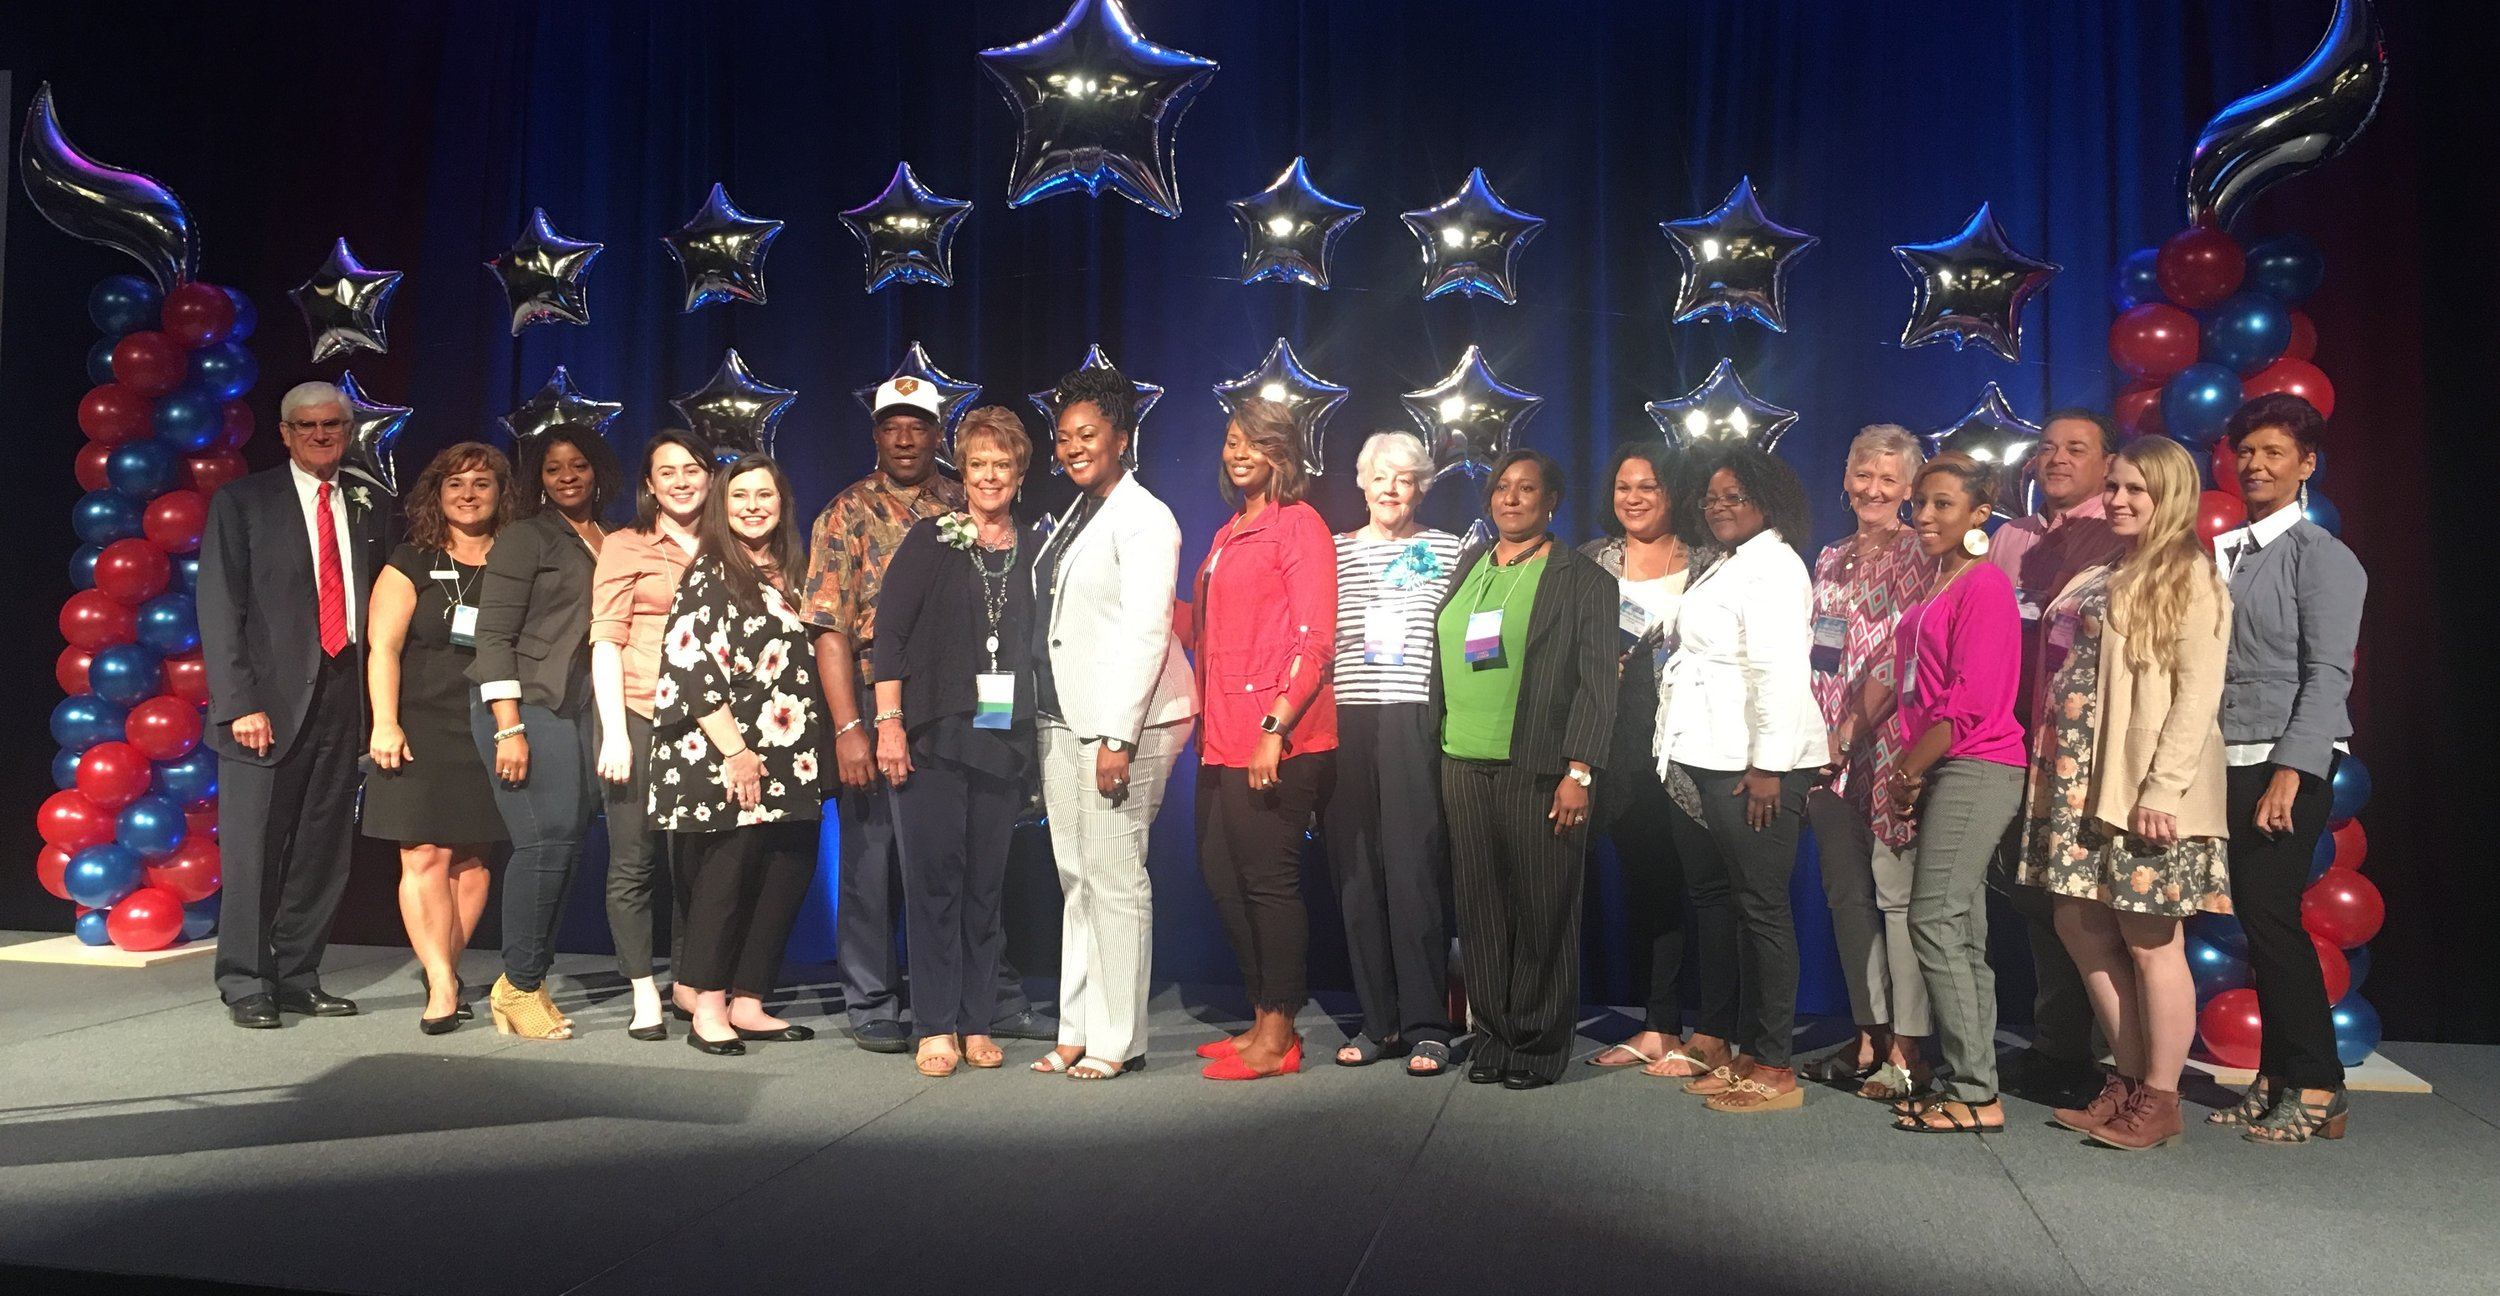 CEI's Award Winning CASA Program - Child Enrichment's CASA of the Augusta Judicial Circuit was recognized at the Georgia CASA Conference on August 4, 2018 with the 2018 Innovative Affiliate CASA Program of the Year Award. Congratulations to our wonderful team members and volunteers!